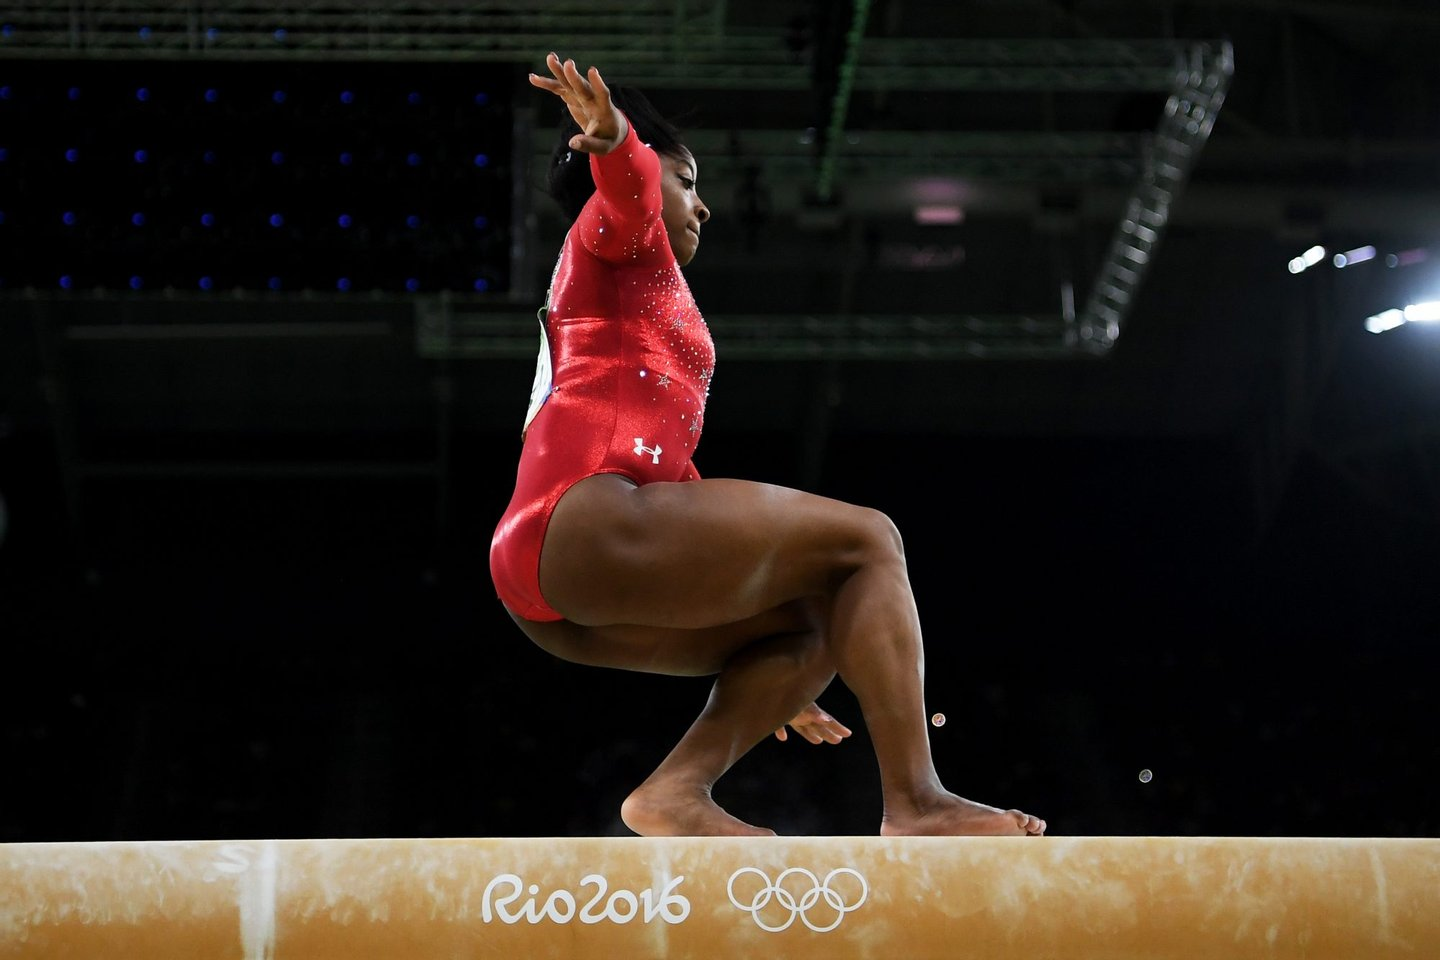 RIO DE JANEIRO, BRAZIL - AUGUST 15: Simone Biles of the United States slips while competing in the Balance Beam Final on day 10 of the Rio 2016 Olympic Games at Rio Olympic Arena on August 15, 2016 in Rio de Janeiro, Brazil. (Photo by Laurence Griffiths/Getty Images)